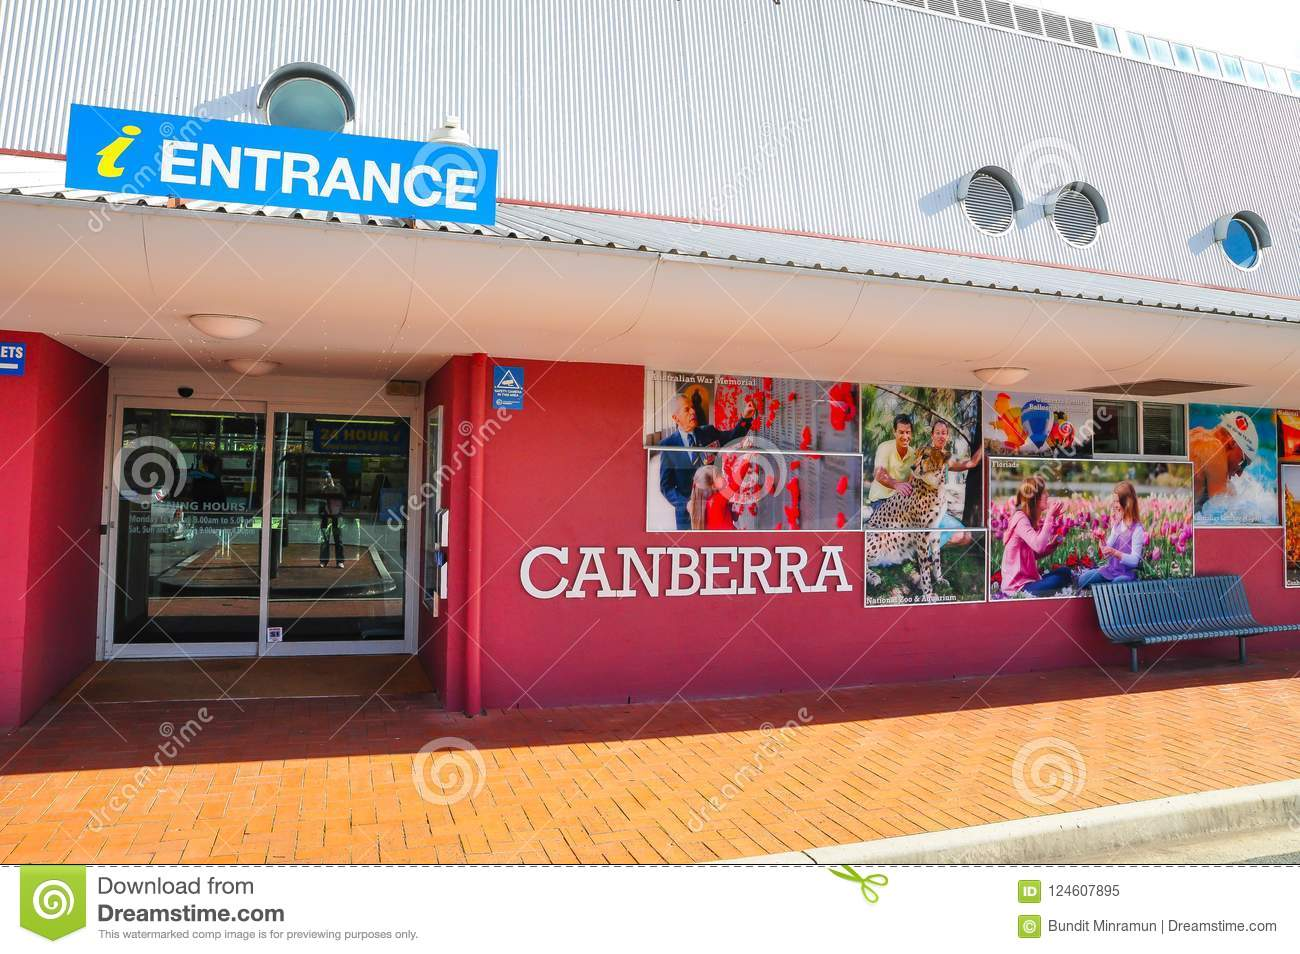 The entrance of Tourist Information center of Canberra.